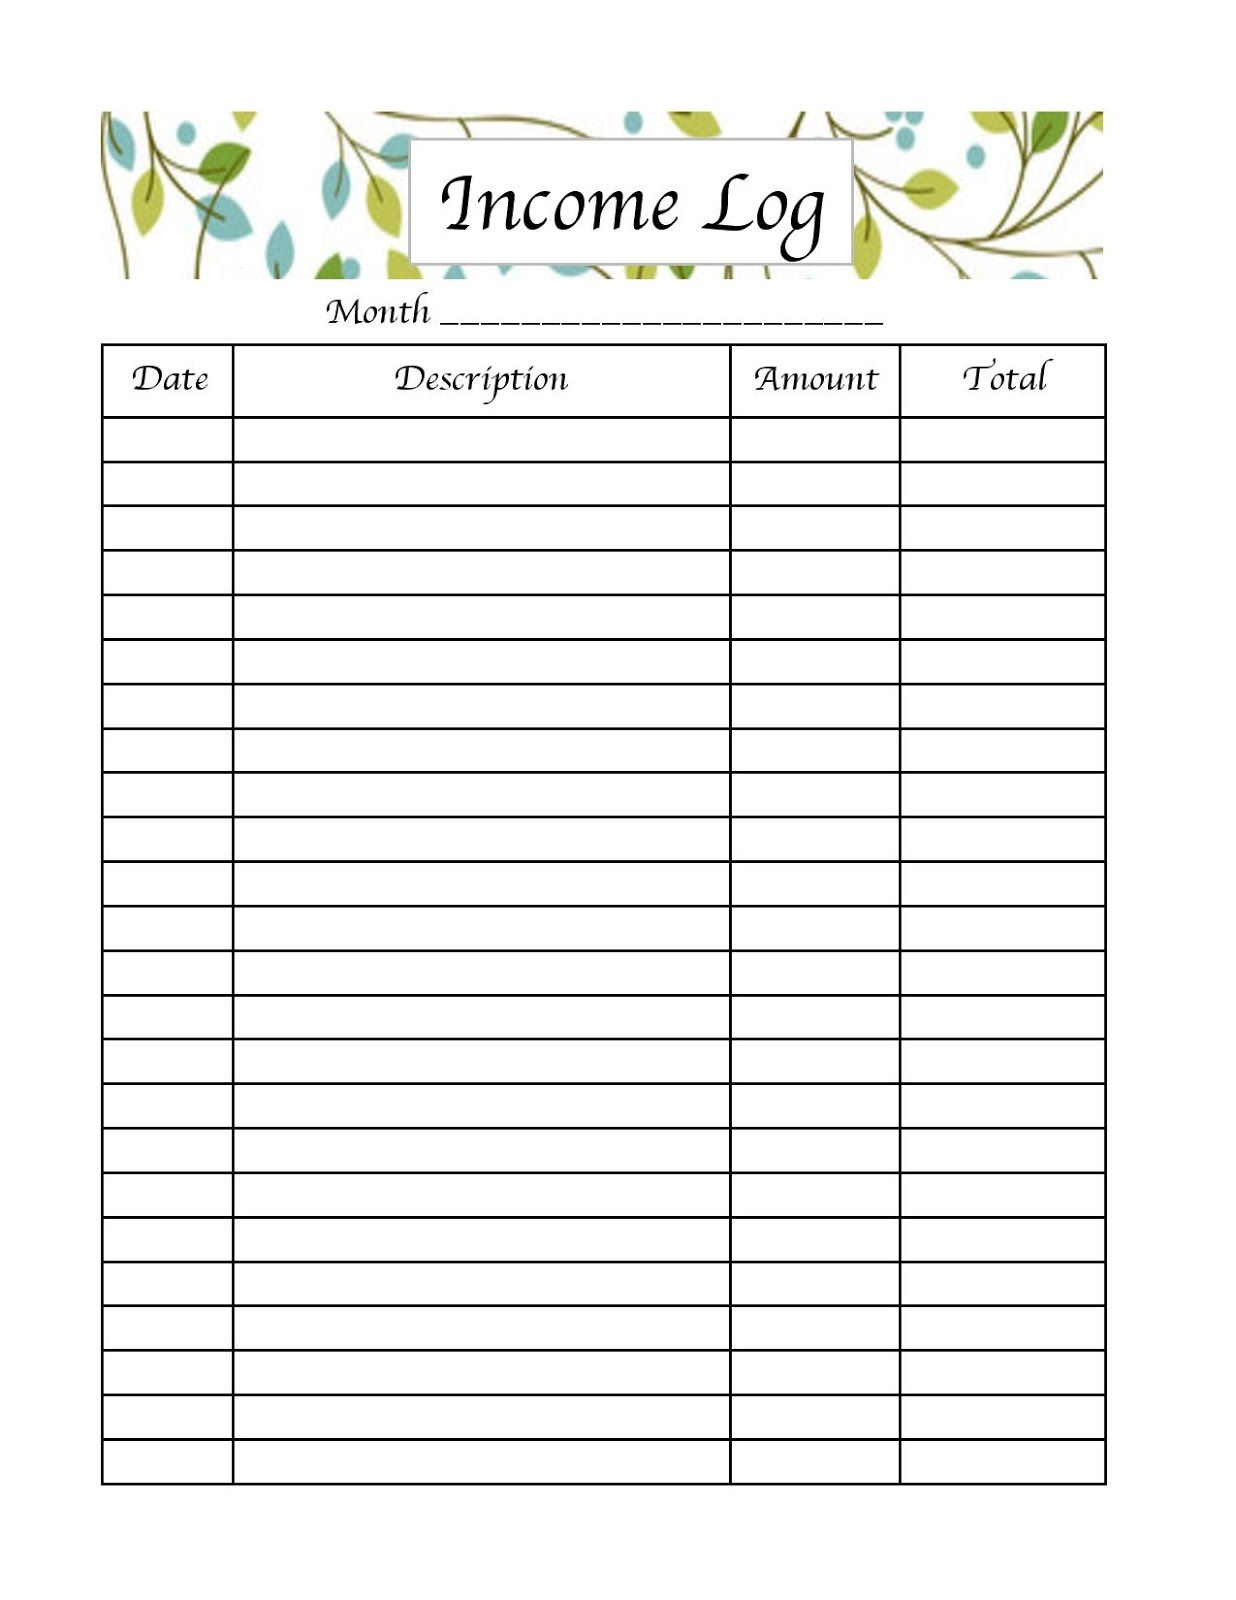 All I Wanted Was An Income Log My Husband And I Have An